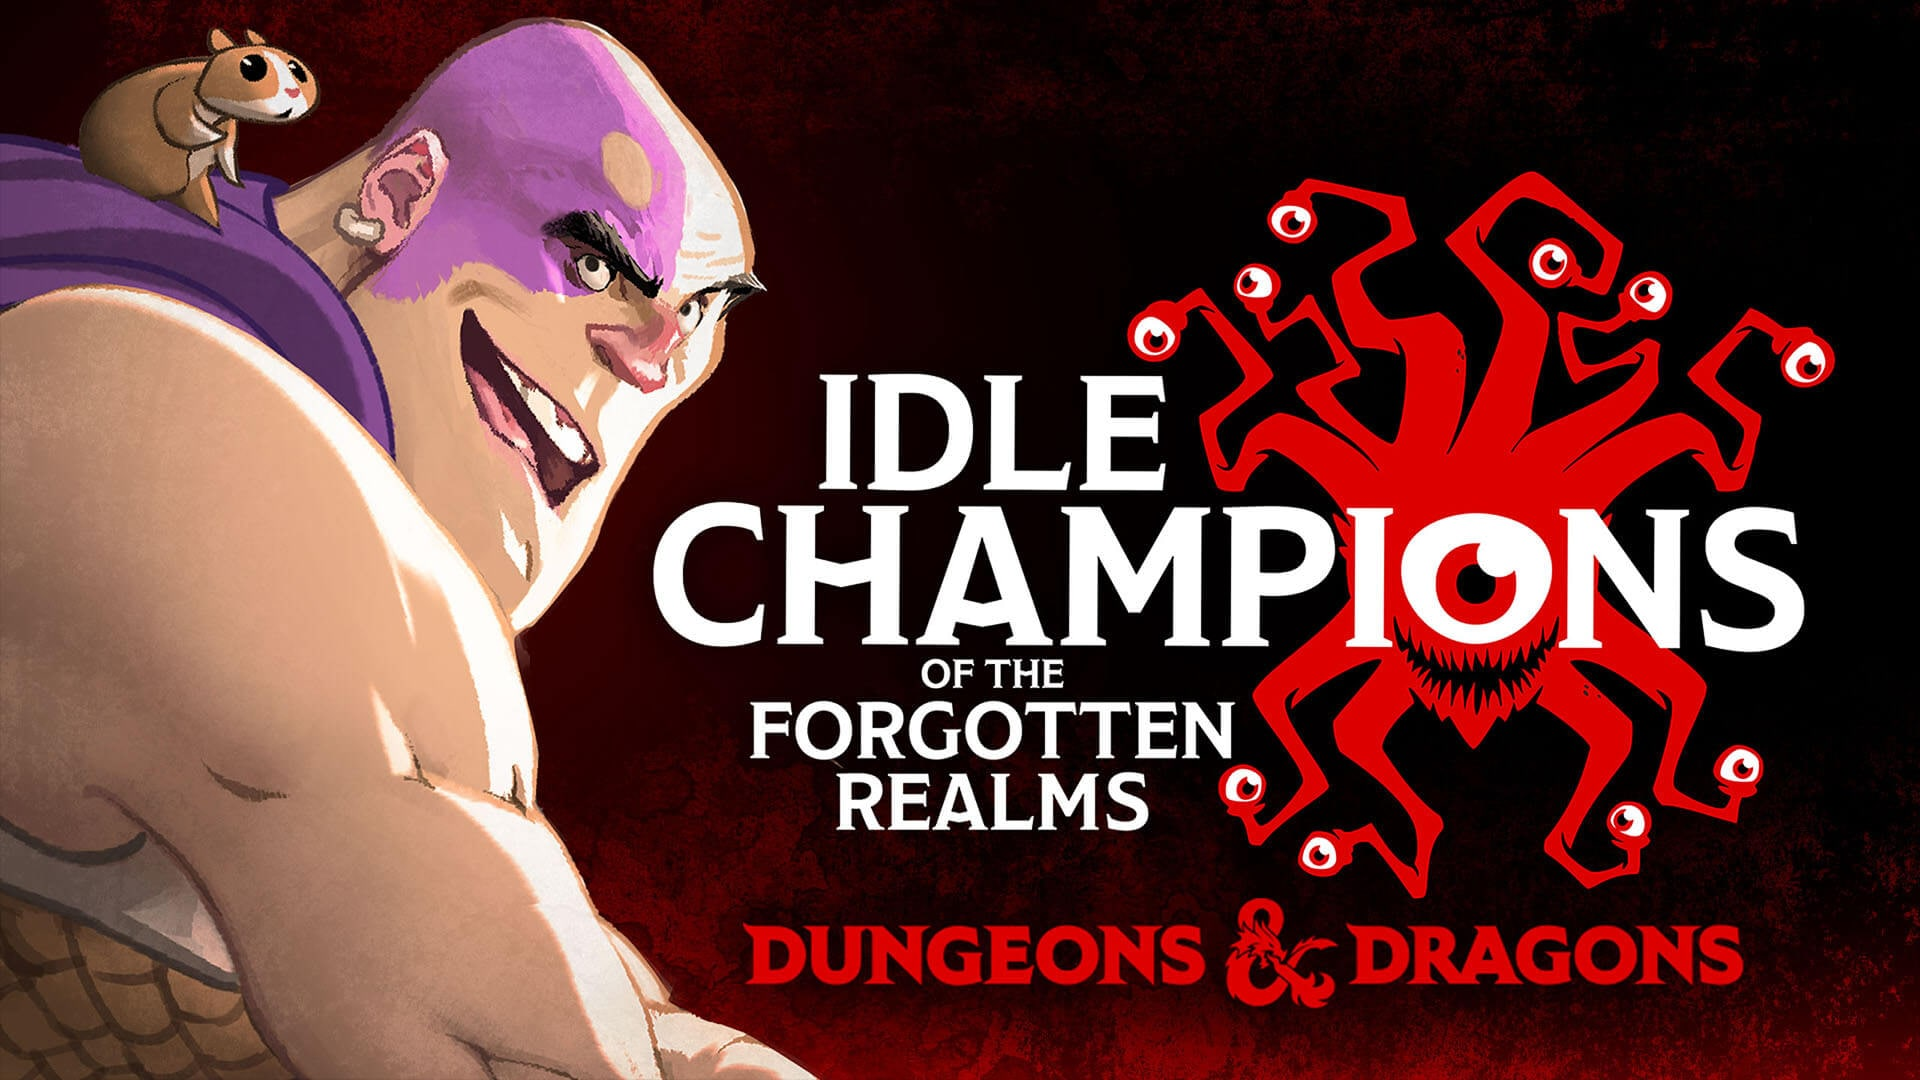 EGS_IDLE_CHAMPIONS_FORGOTTEN_REALM